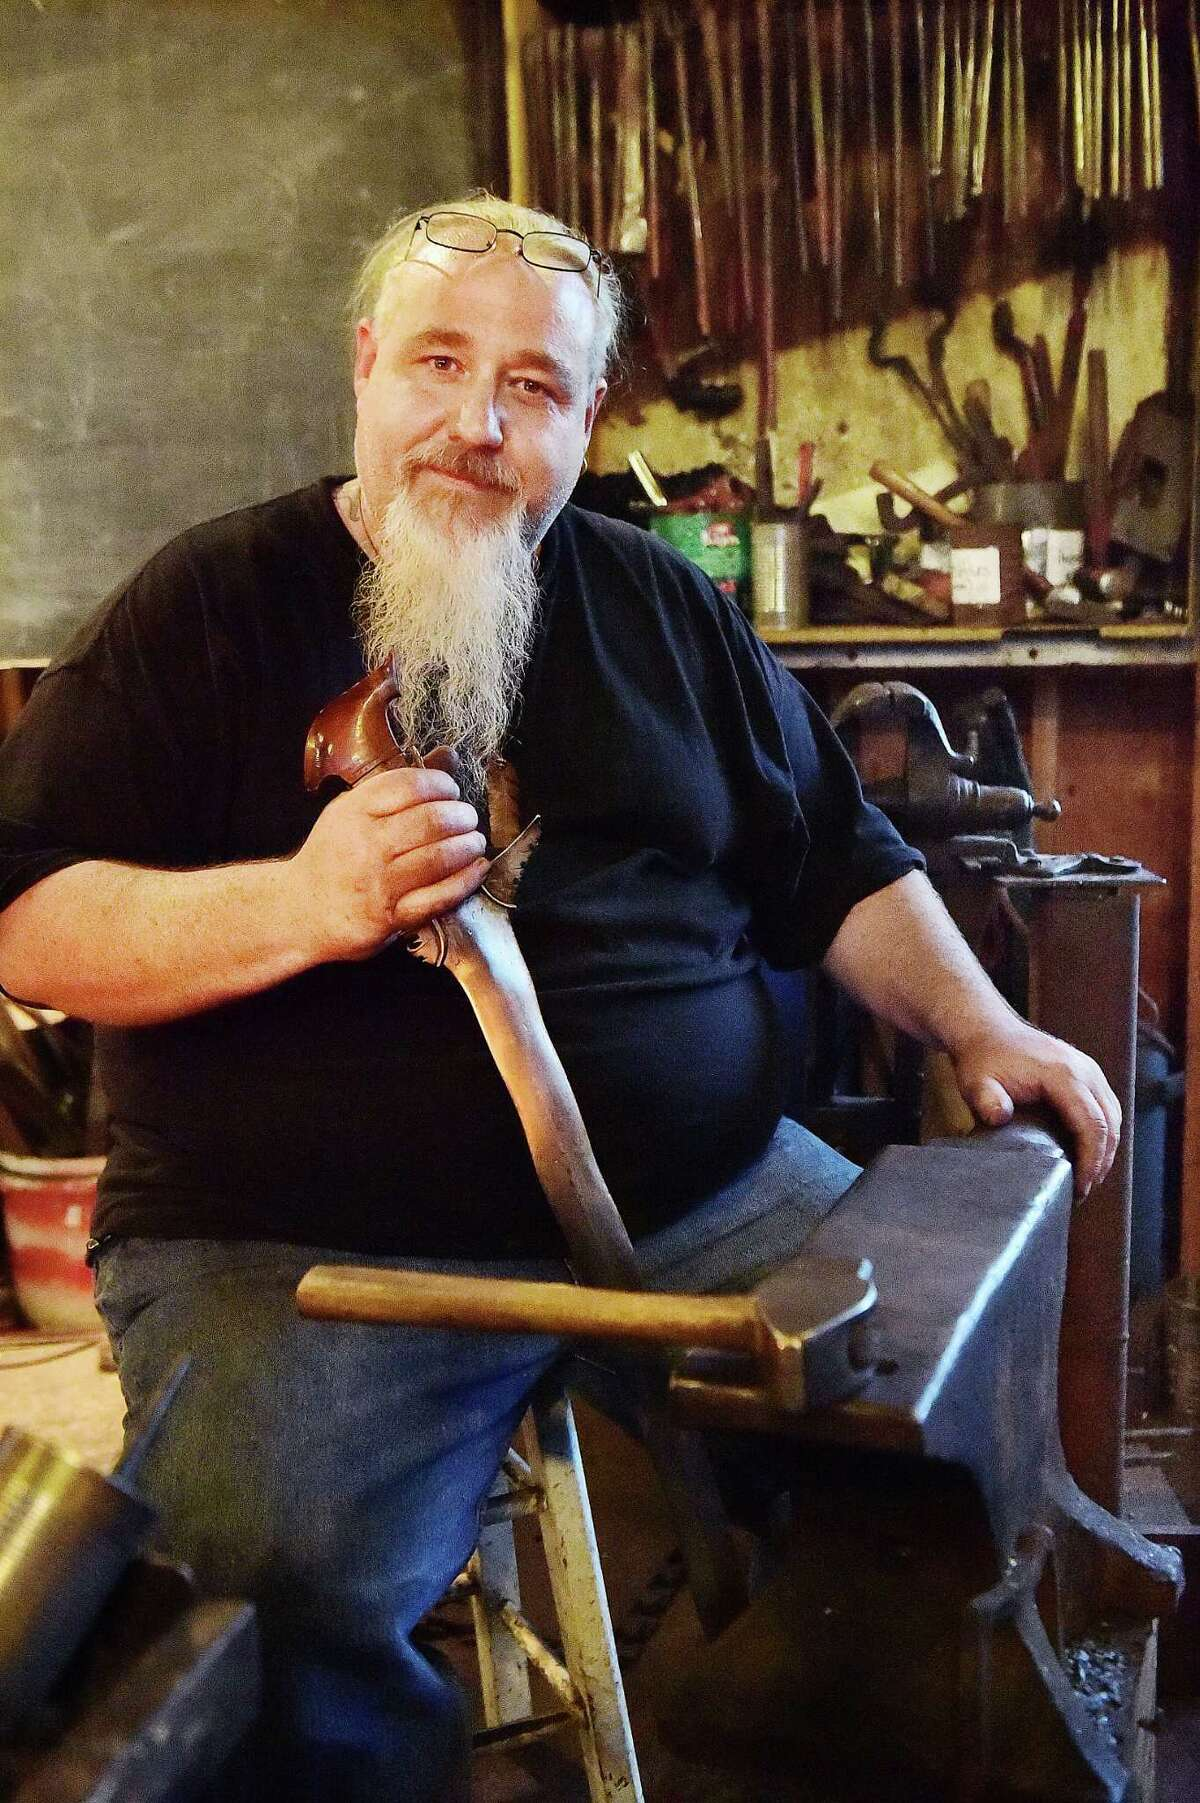 Guilford bladesmith Mace Vitale, rated Journeyman smith with the American Bladesmith Society and owner of Laurel Rock Forge , is photographed Wednesday, August 13, 2015, at the Guilford Art Center where he teaches Blacksmithing. Vitale holds an antique Phillipine version of the Kris Sword, similar to the Moro Kris Sword he made when he won the History Channel's Forged in Fire. (Catherine Avalone - New Haven Register)